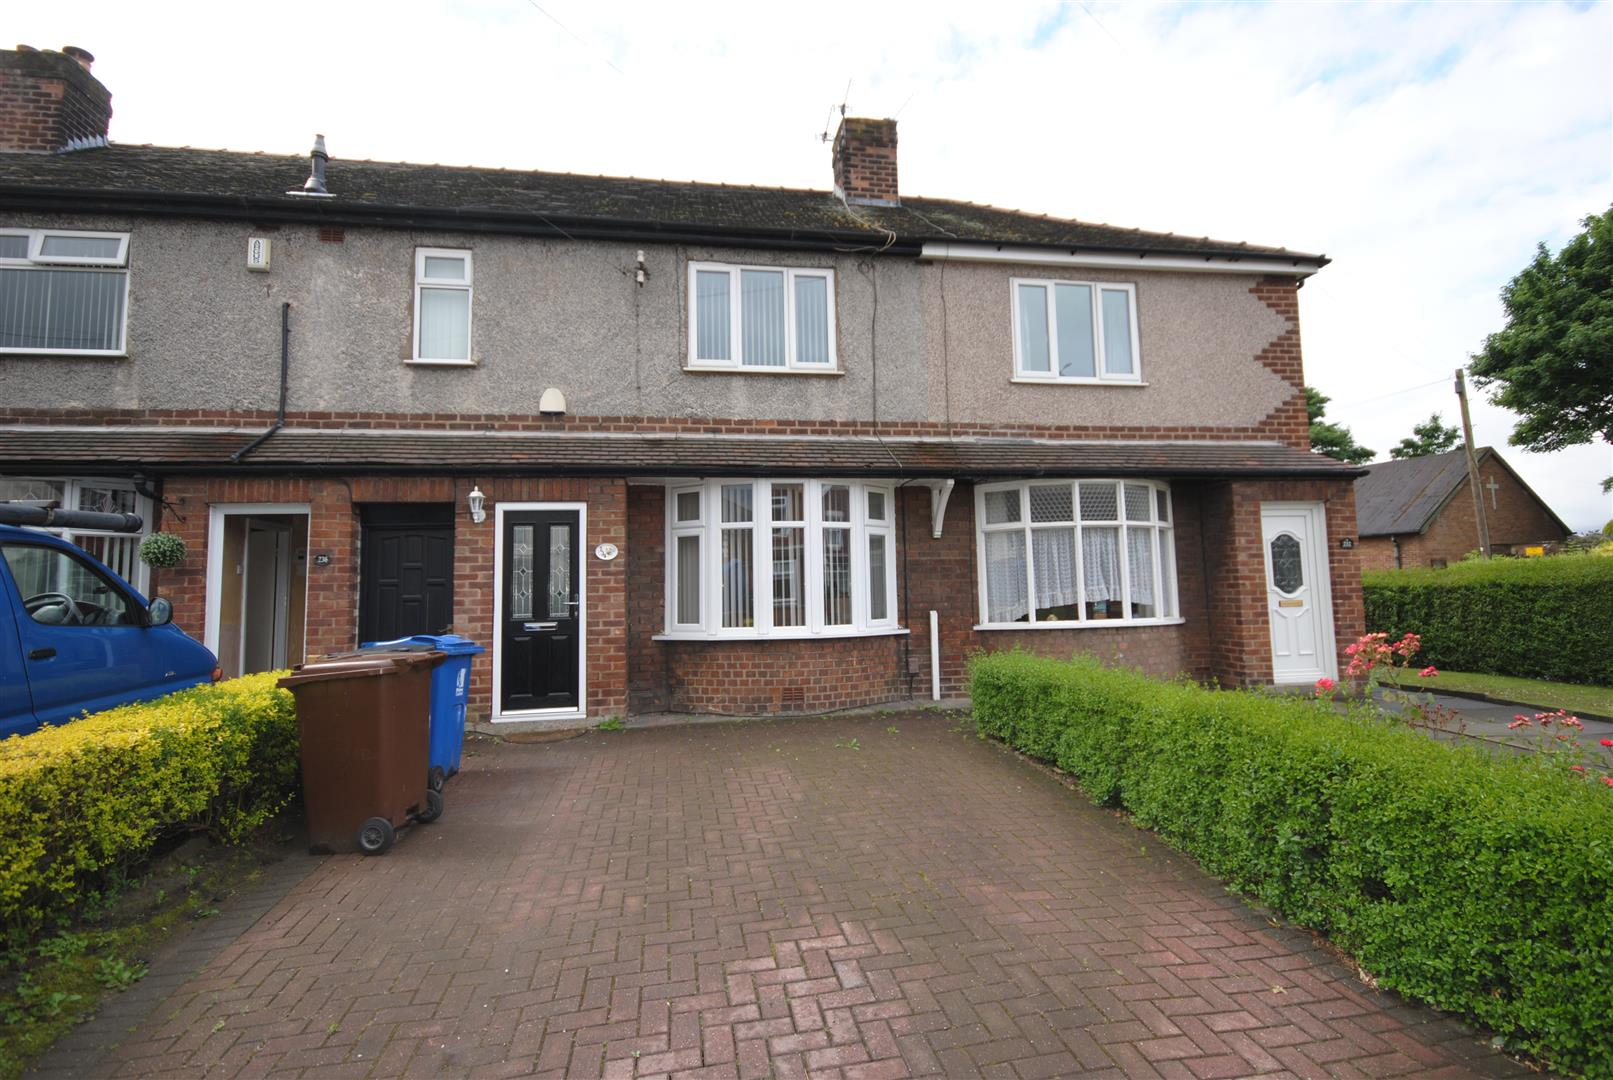 2 Bedrooms Terraced House for sale in Atherton Road, Hindley, Wigan